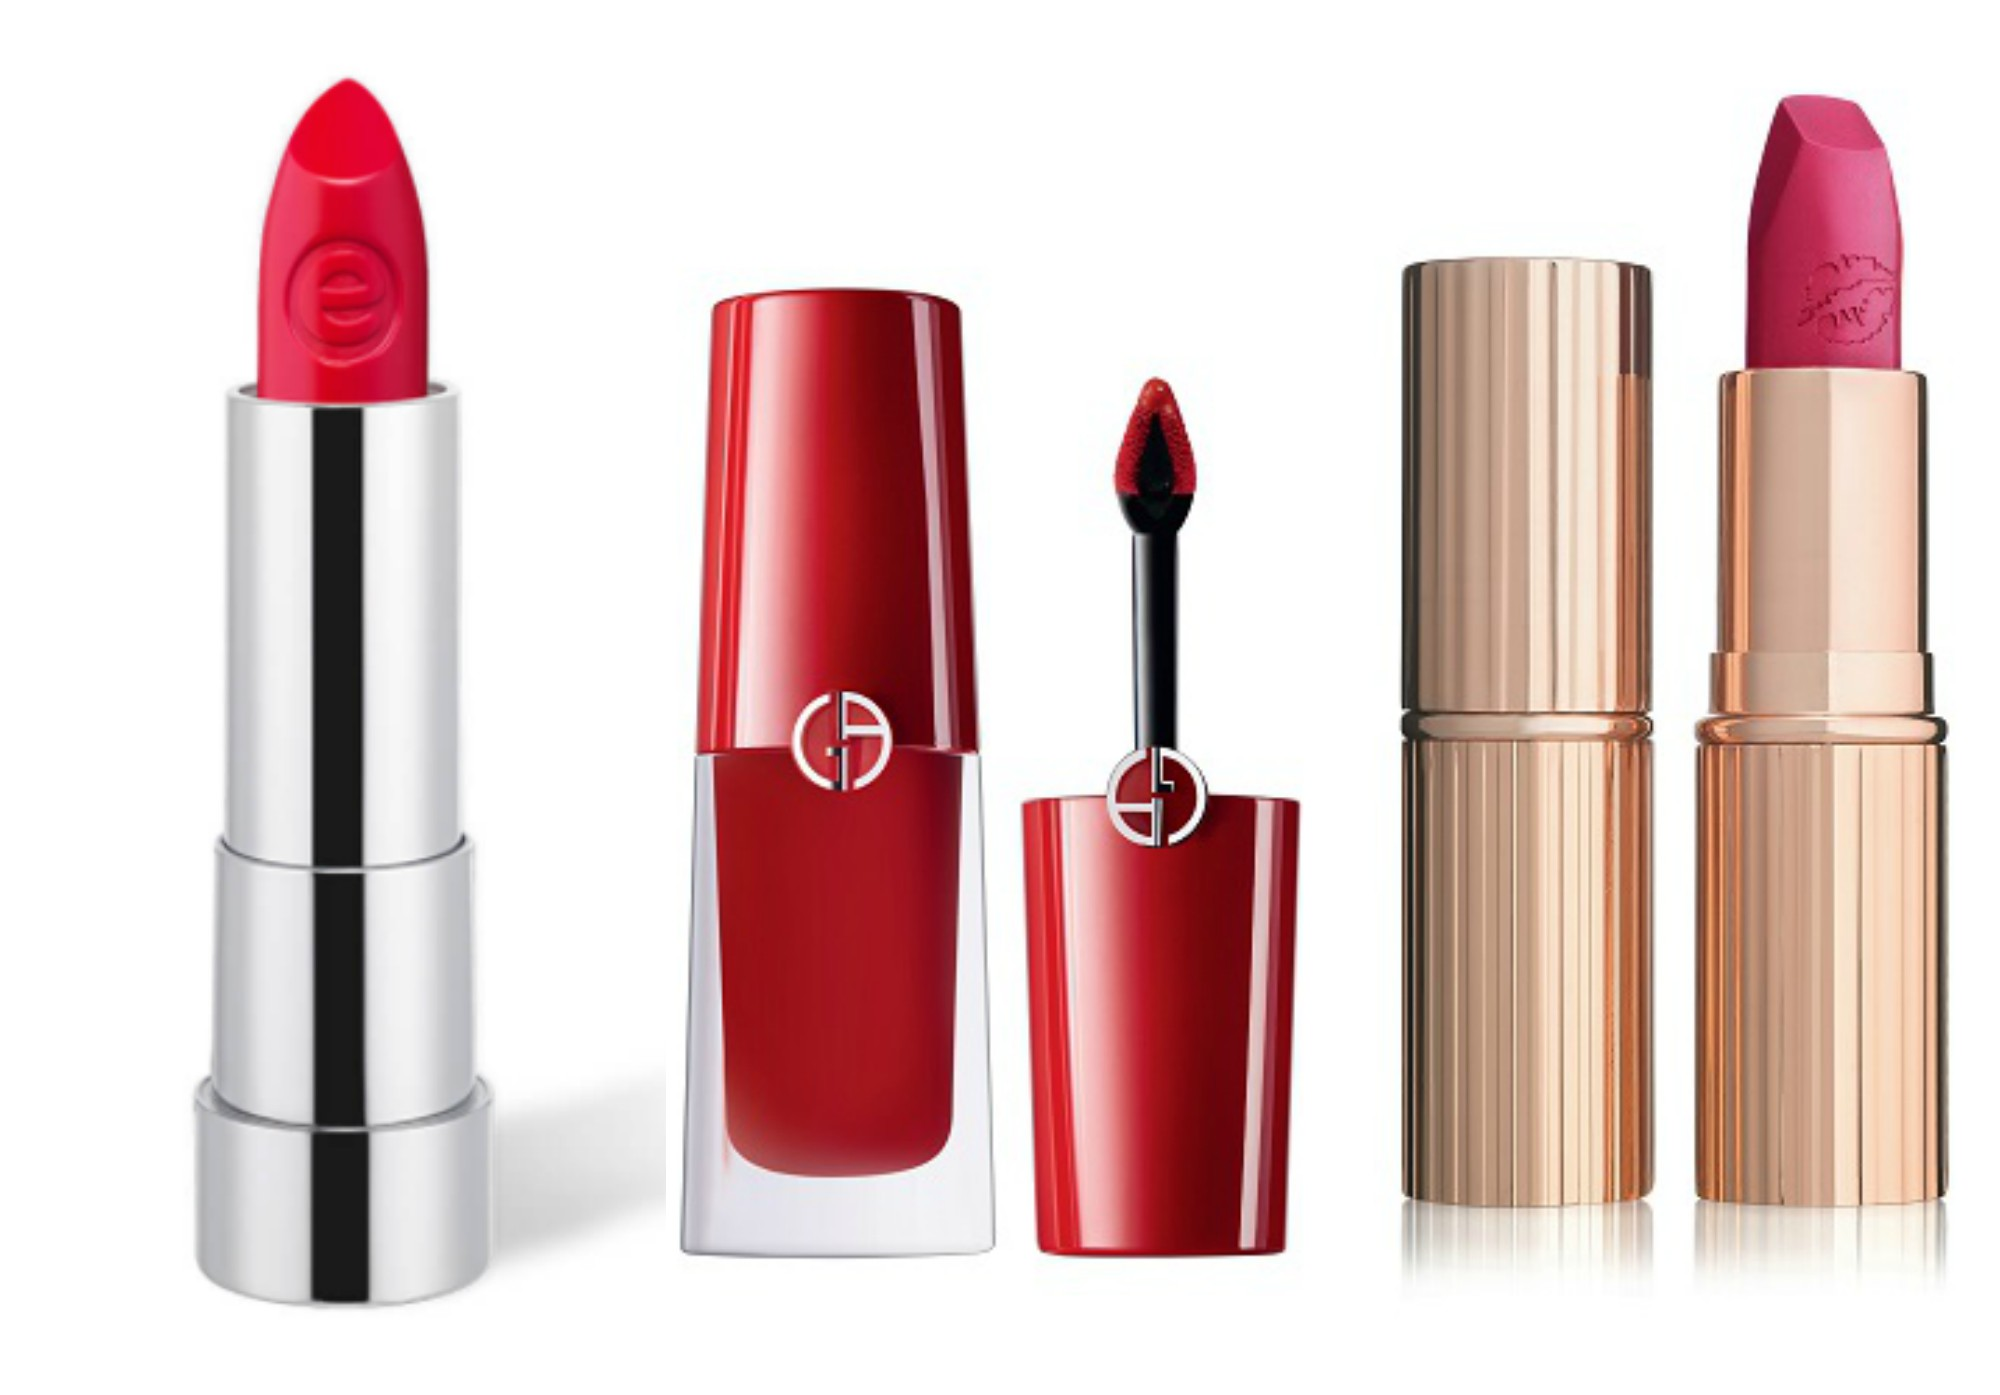 To celebrate National Lipstick Day, we've rounded up 21 of our favorite lipstick deals and splurges